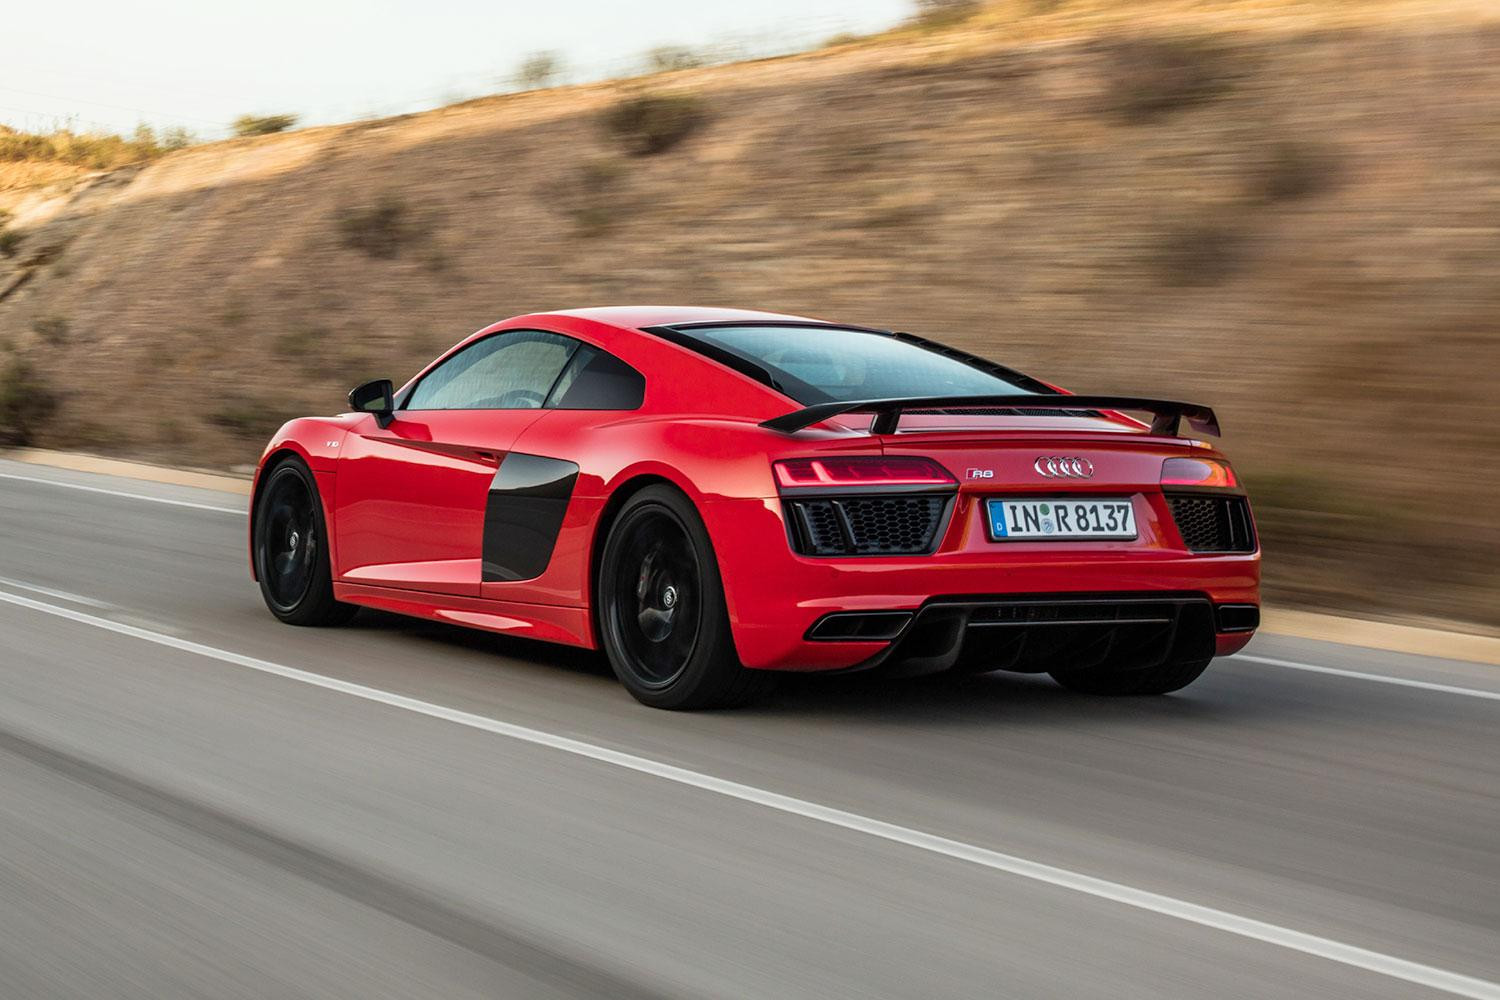 11 Awesome Wallpaper Of Audi R8 And Information